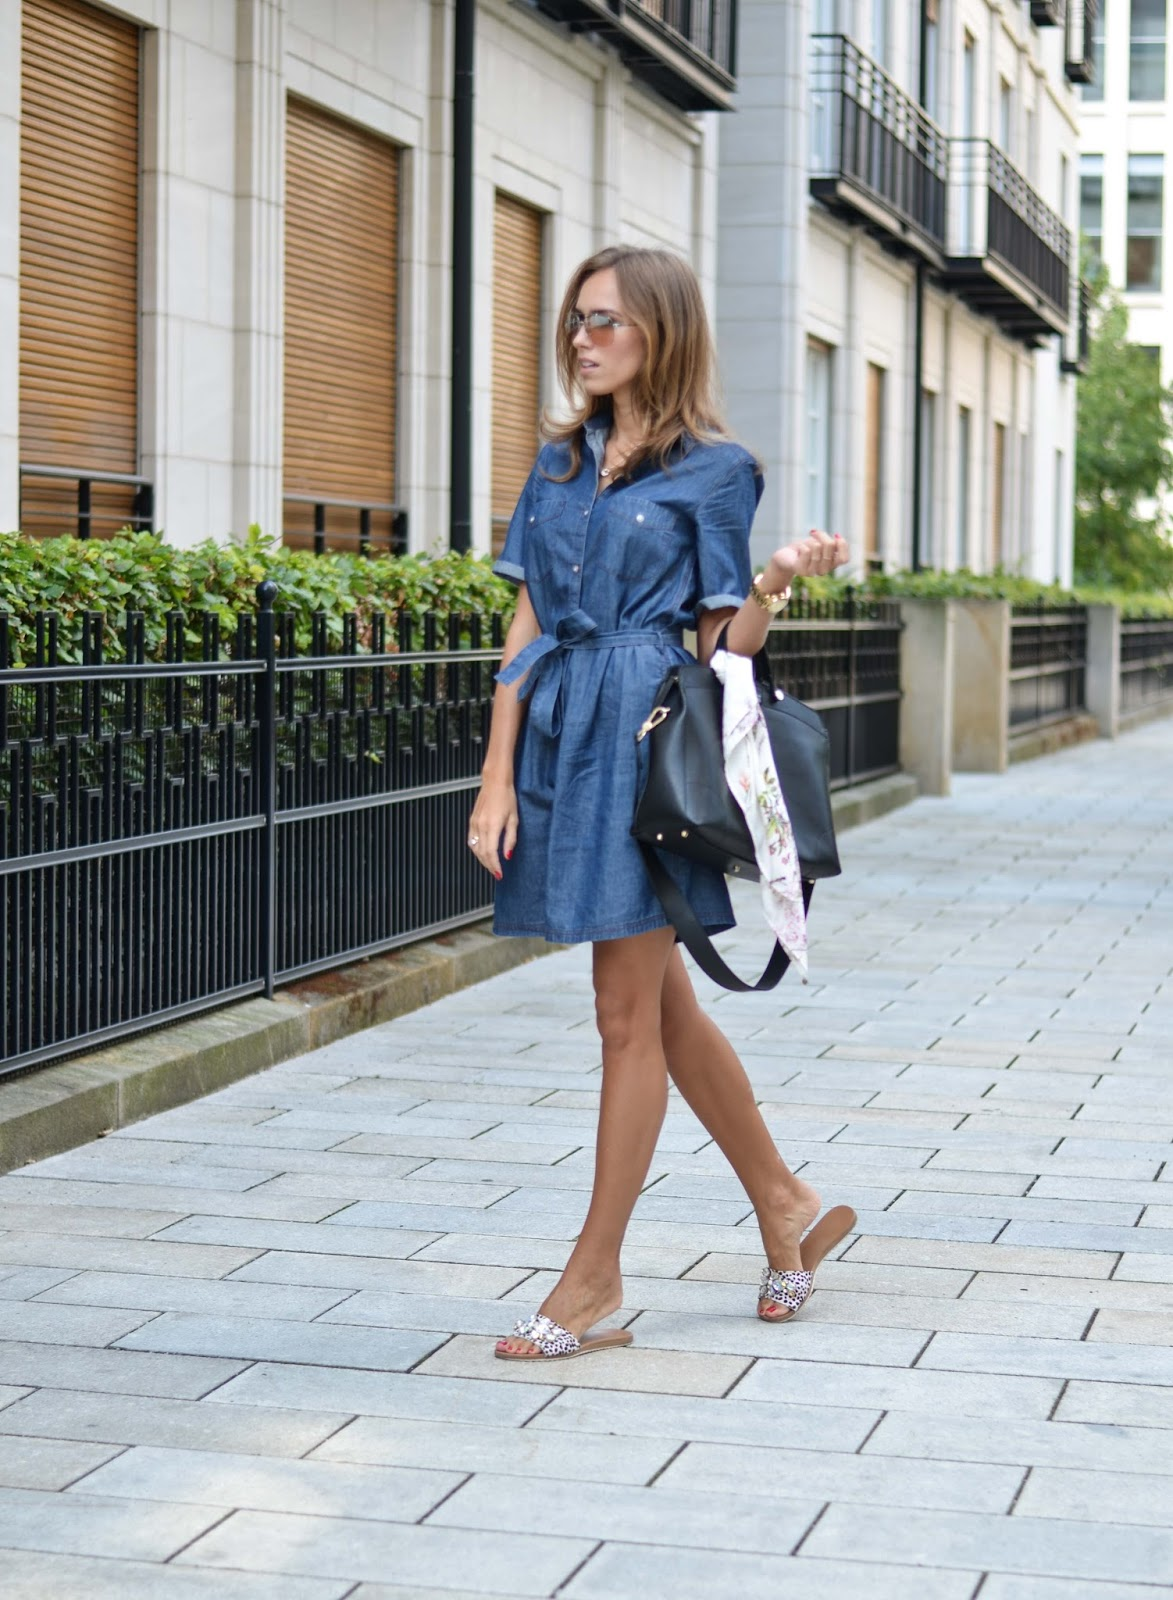 kristjaana mere denim button up belted dress summer 2015 fashion outfit